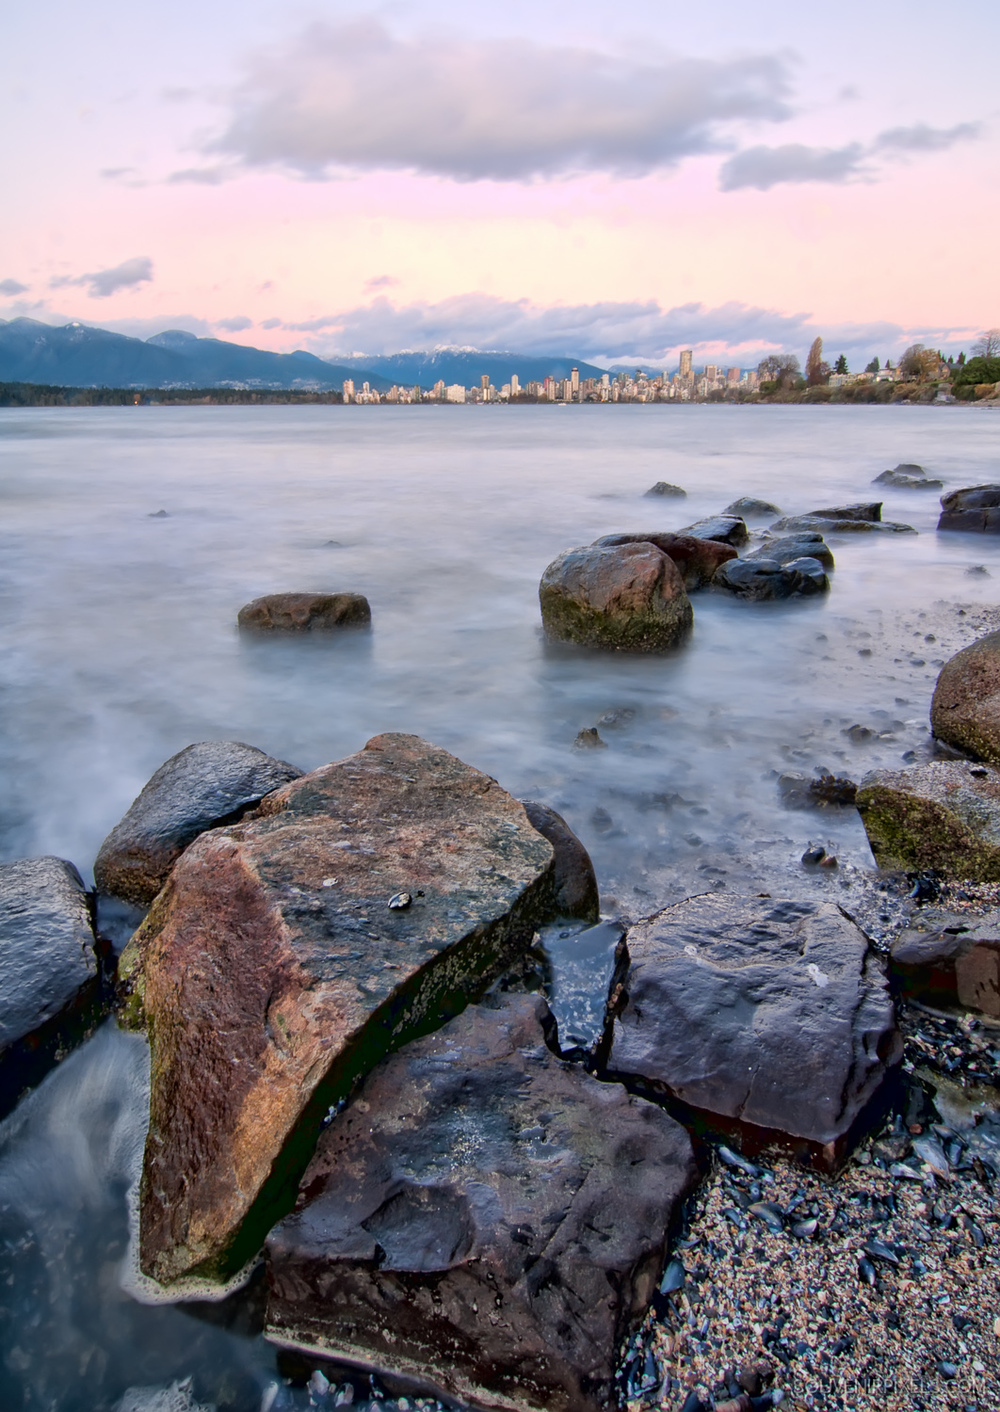 P0238-Rocks Large in Foreground with Vancouver Skyline-XLarge.jpg